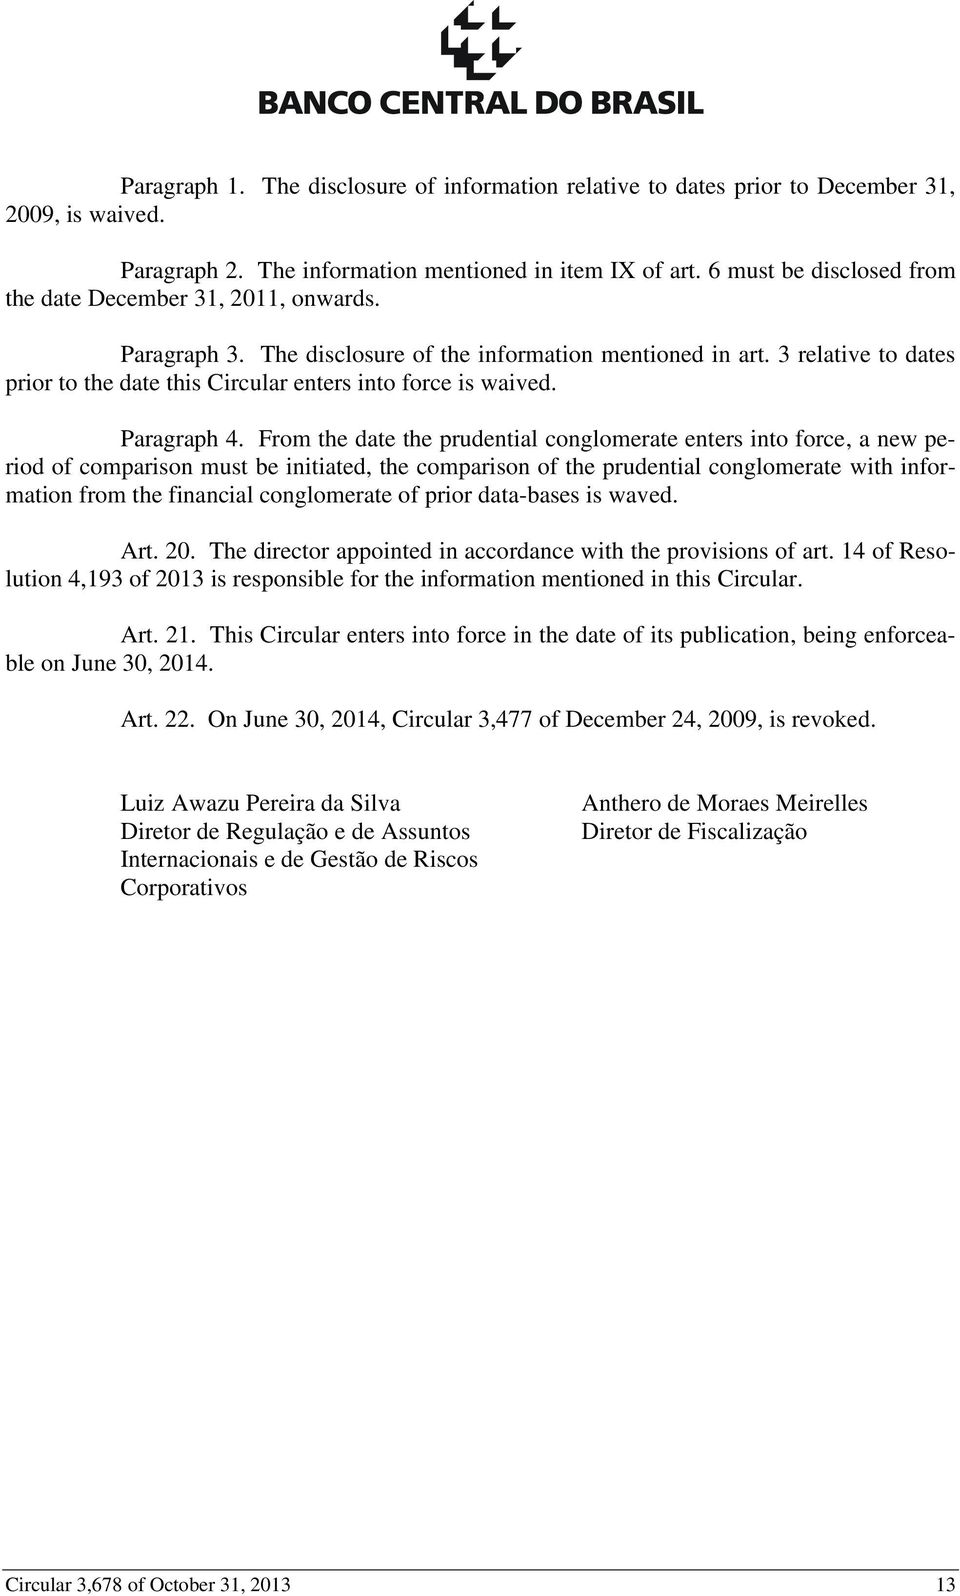 3 relative to dates prior to the date this Circular enters into force is waived. Paragraph 4.